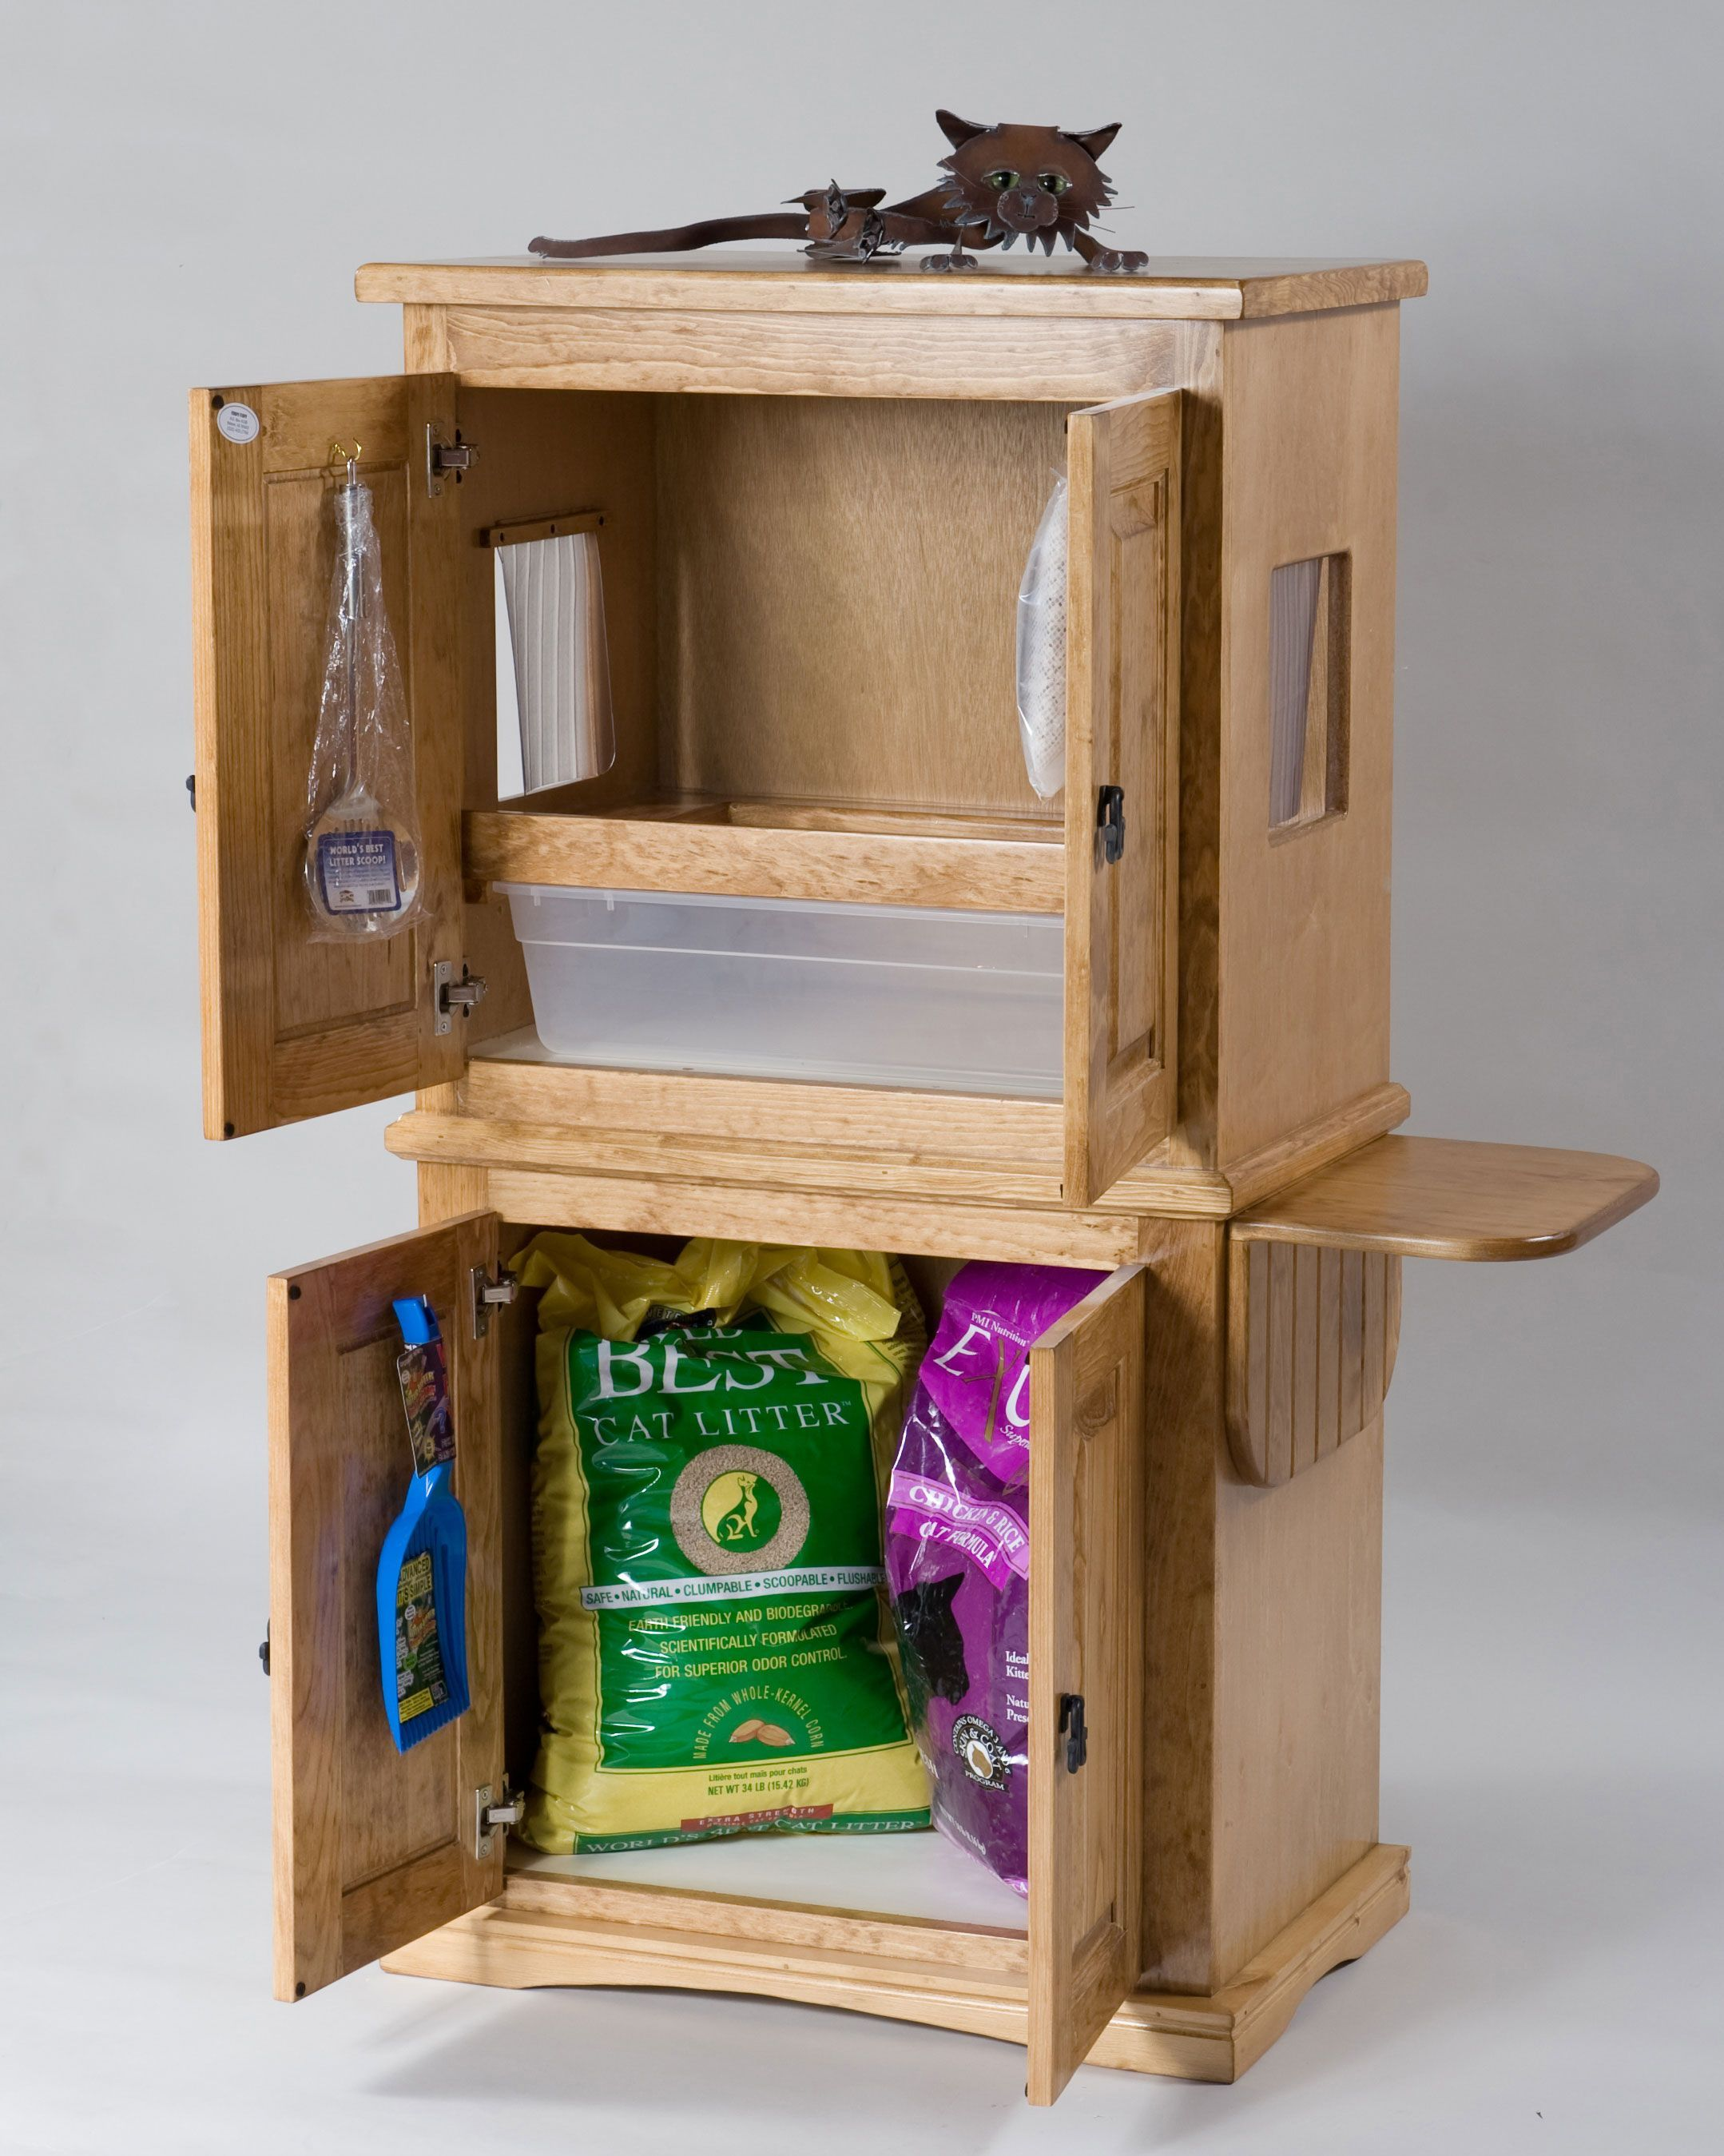 Cat litter Furniture with Storage Litter